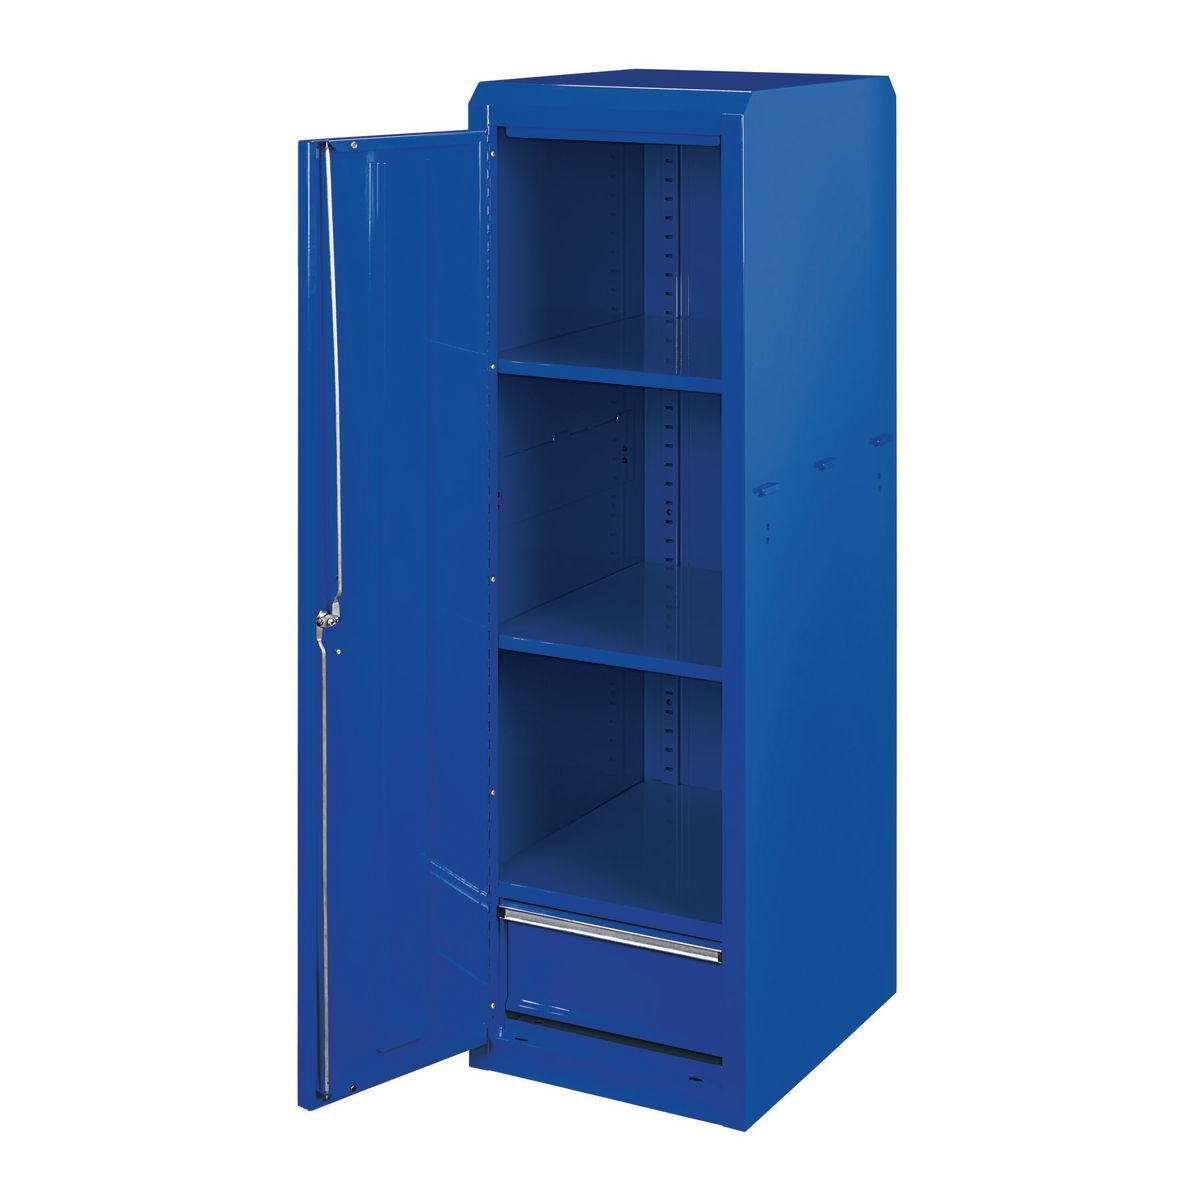 16 in. Blue End Locker Blue Locker on blue tools, blue printers, blue screens, blue folders, blue first aid, blue pallets, blue benches, blue containers, blue files, blue floors, blue bar, blue linen, blue mailboxes, blue signs, blue boxes, blue scales, blue library, blue cupboards, blue zebra, blue locks,